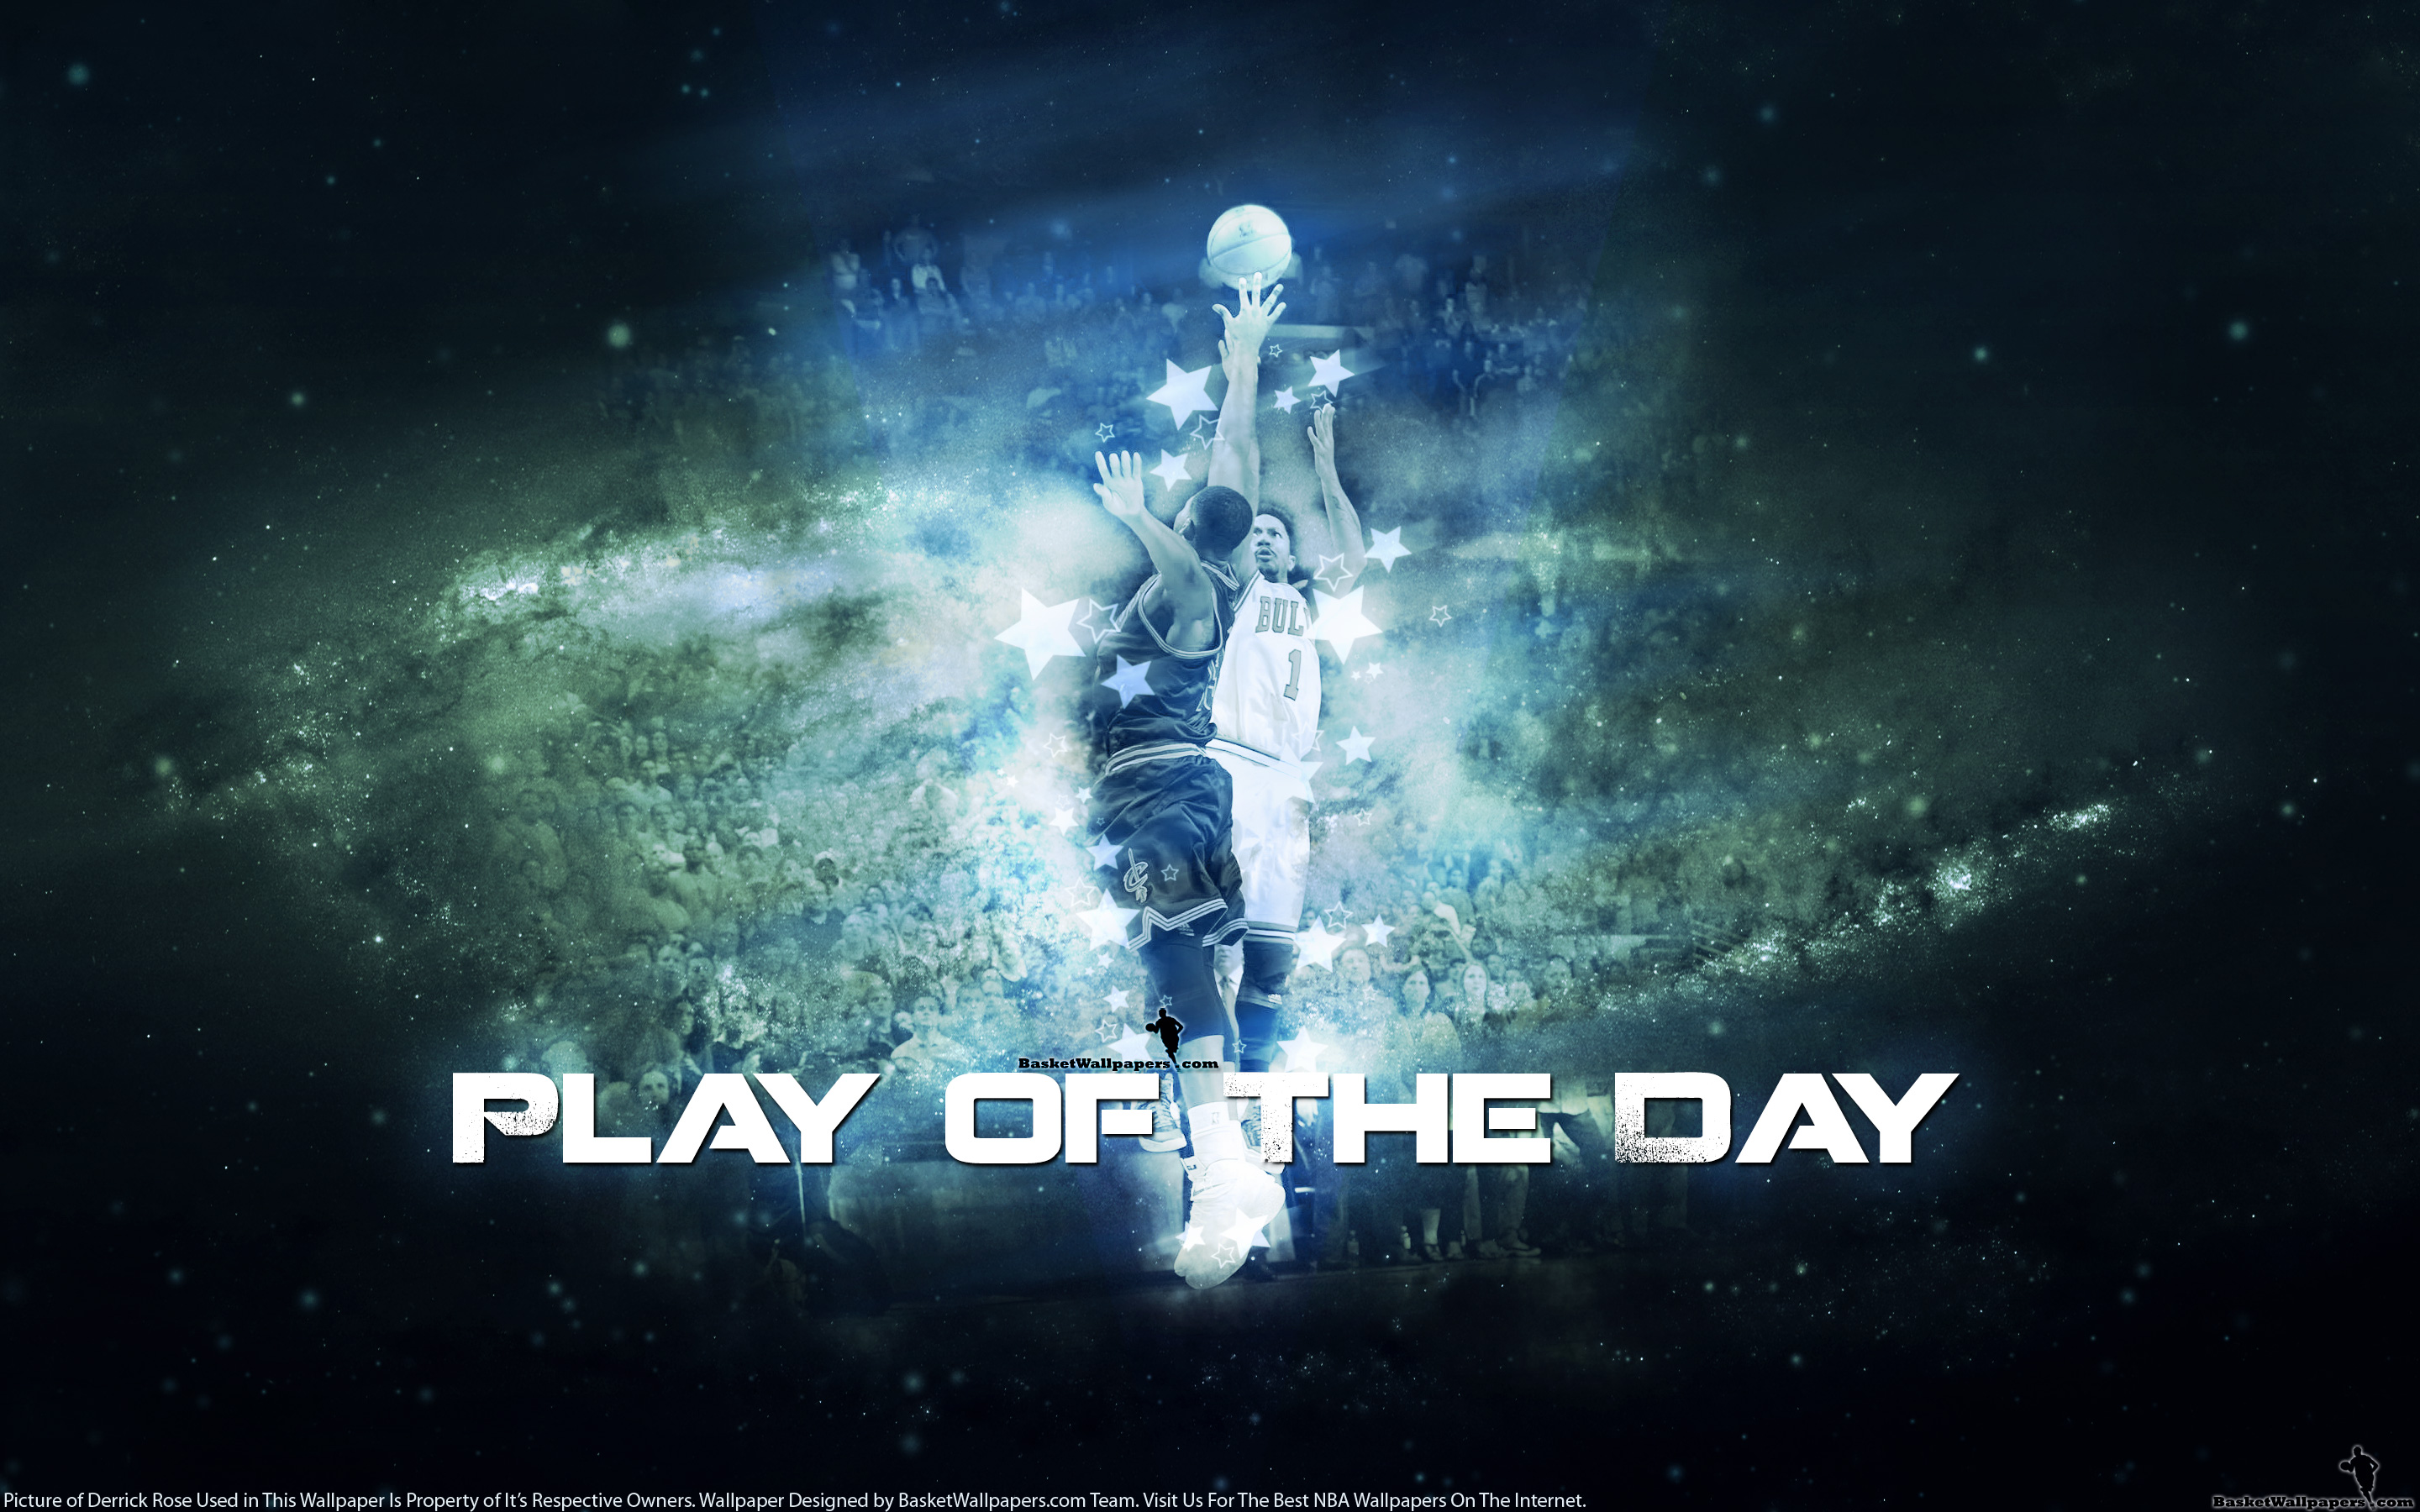 Derrick Rose 8 May 2015 Play Of The Day Wallpaper